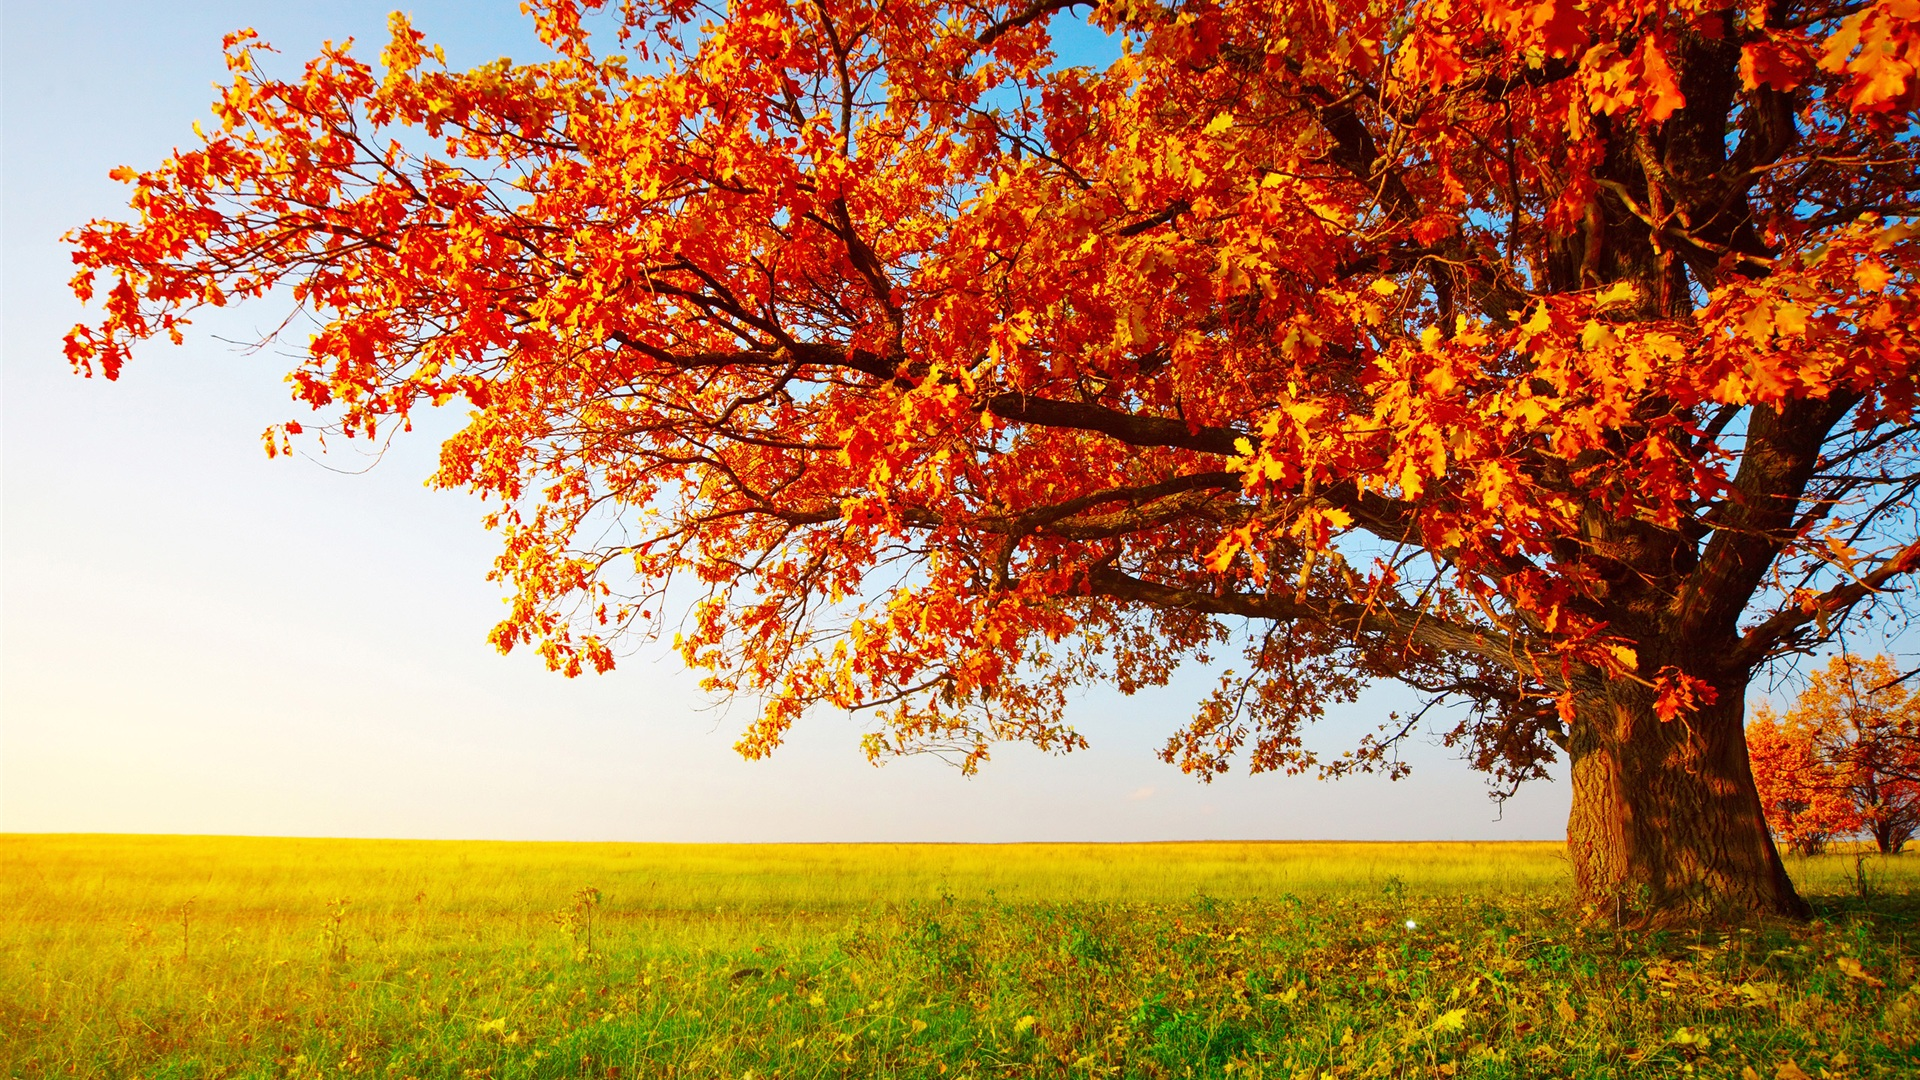 40 Autumn Wallpaper Backgrounds For HD Download 1920x1080